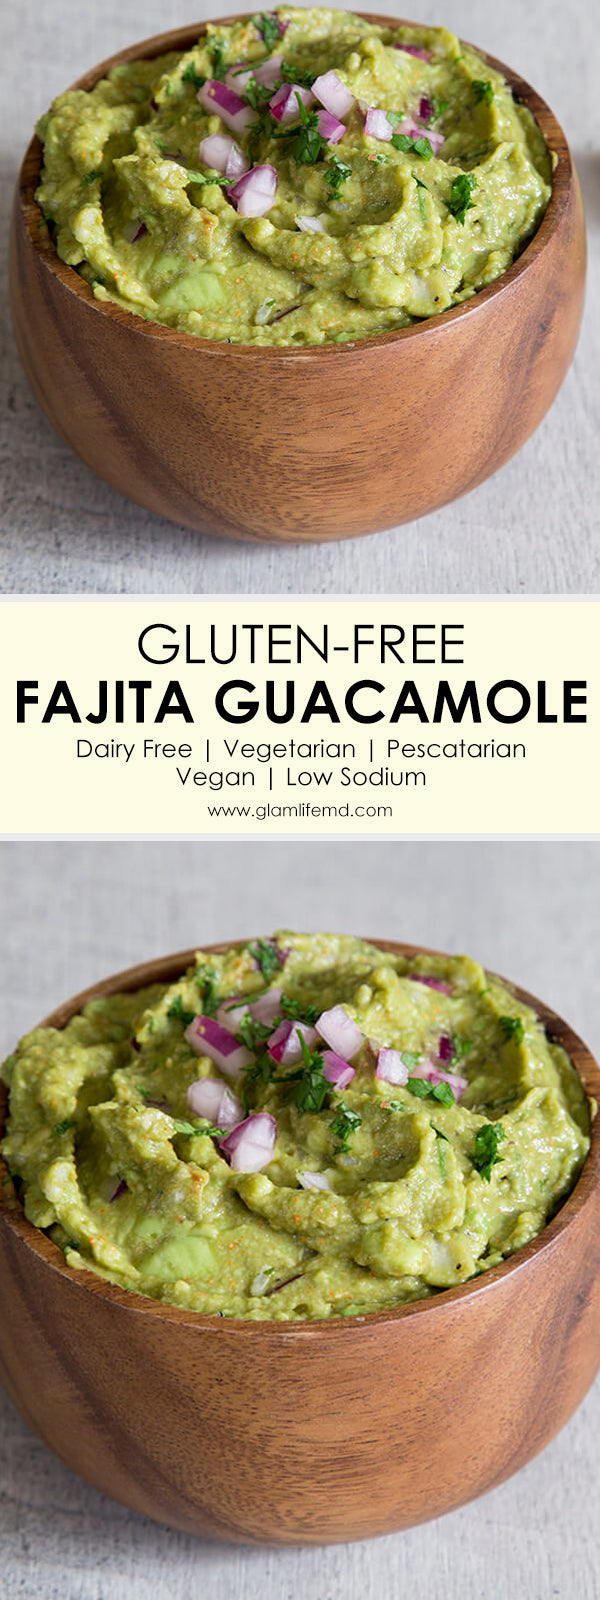 Fajita Guacamole | Easy Cheese Dips Recipes